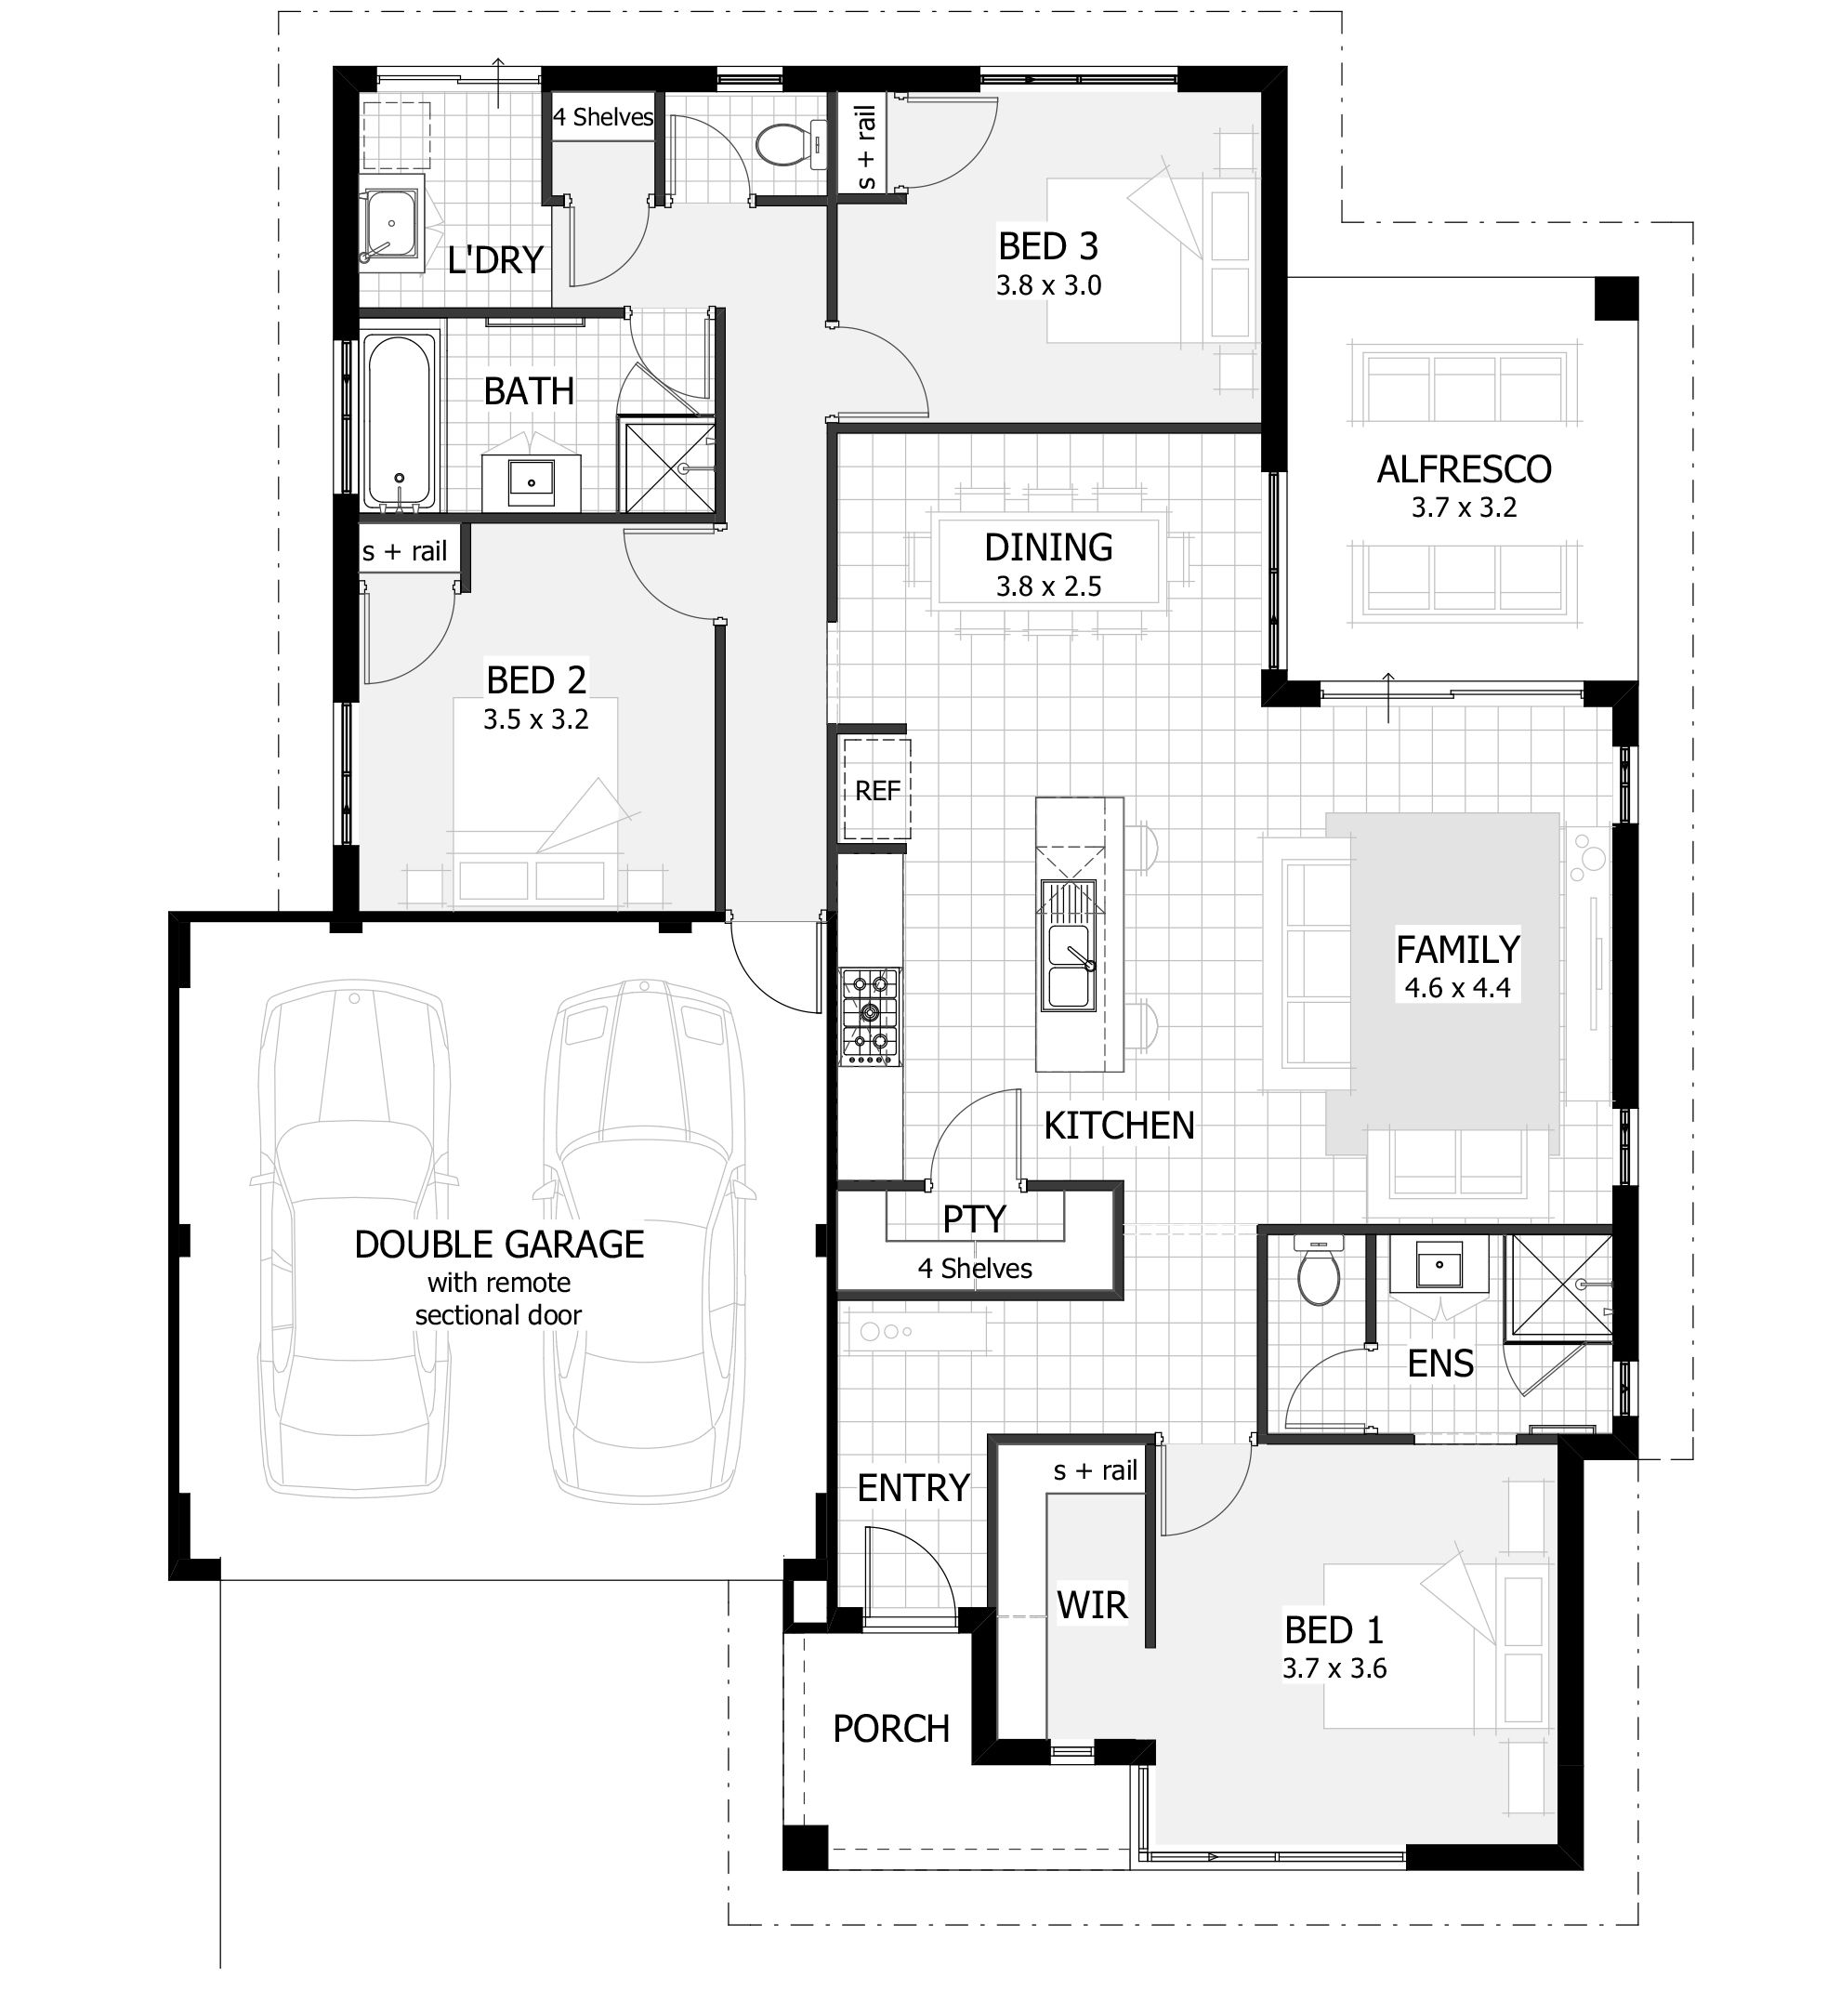 3 Bedroom House Floor Plan Floor Plan Beautiful Decor Master Designs Vpui Dont Need Sketch In 2020 Bedroom House Plans Three Bedroom House Plan Beautiful House Plans